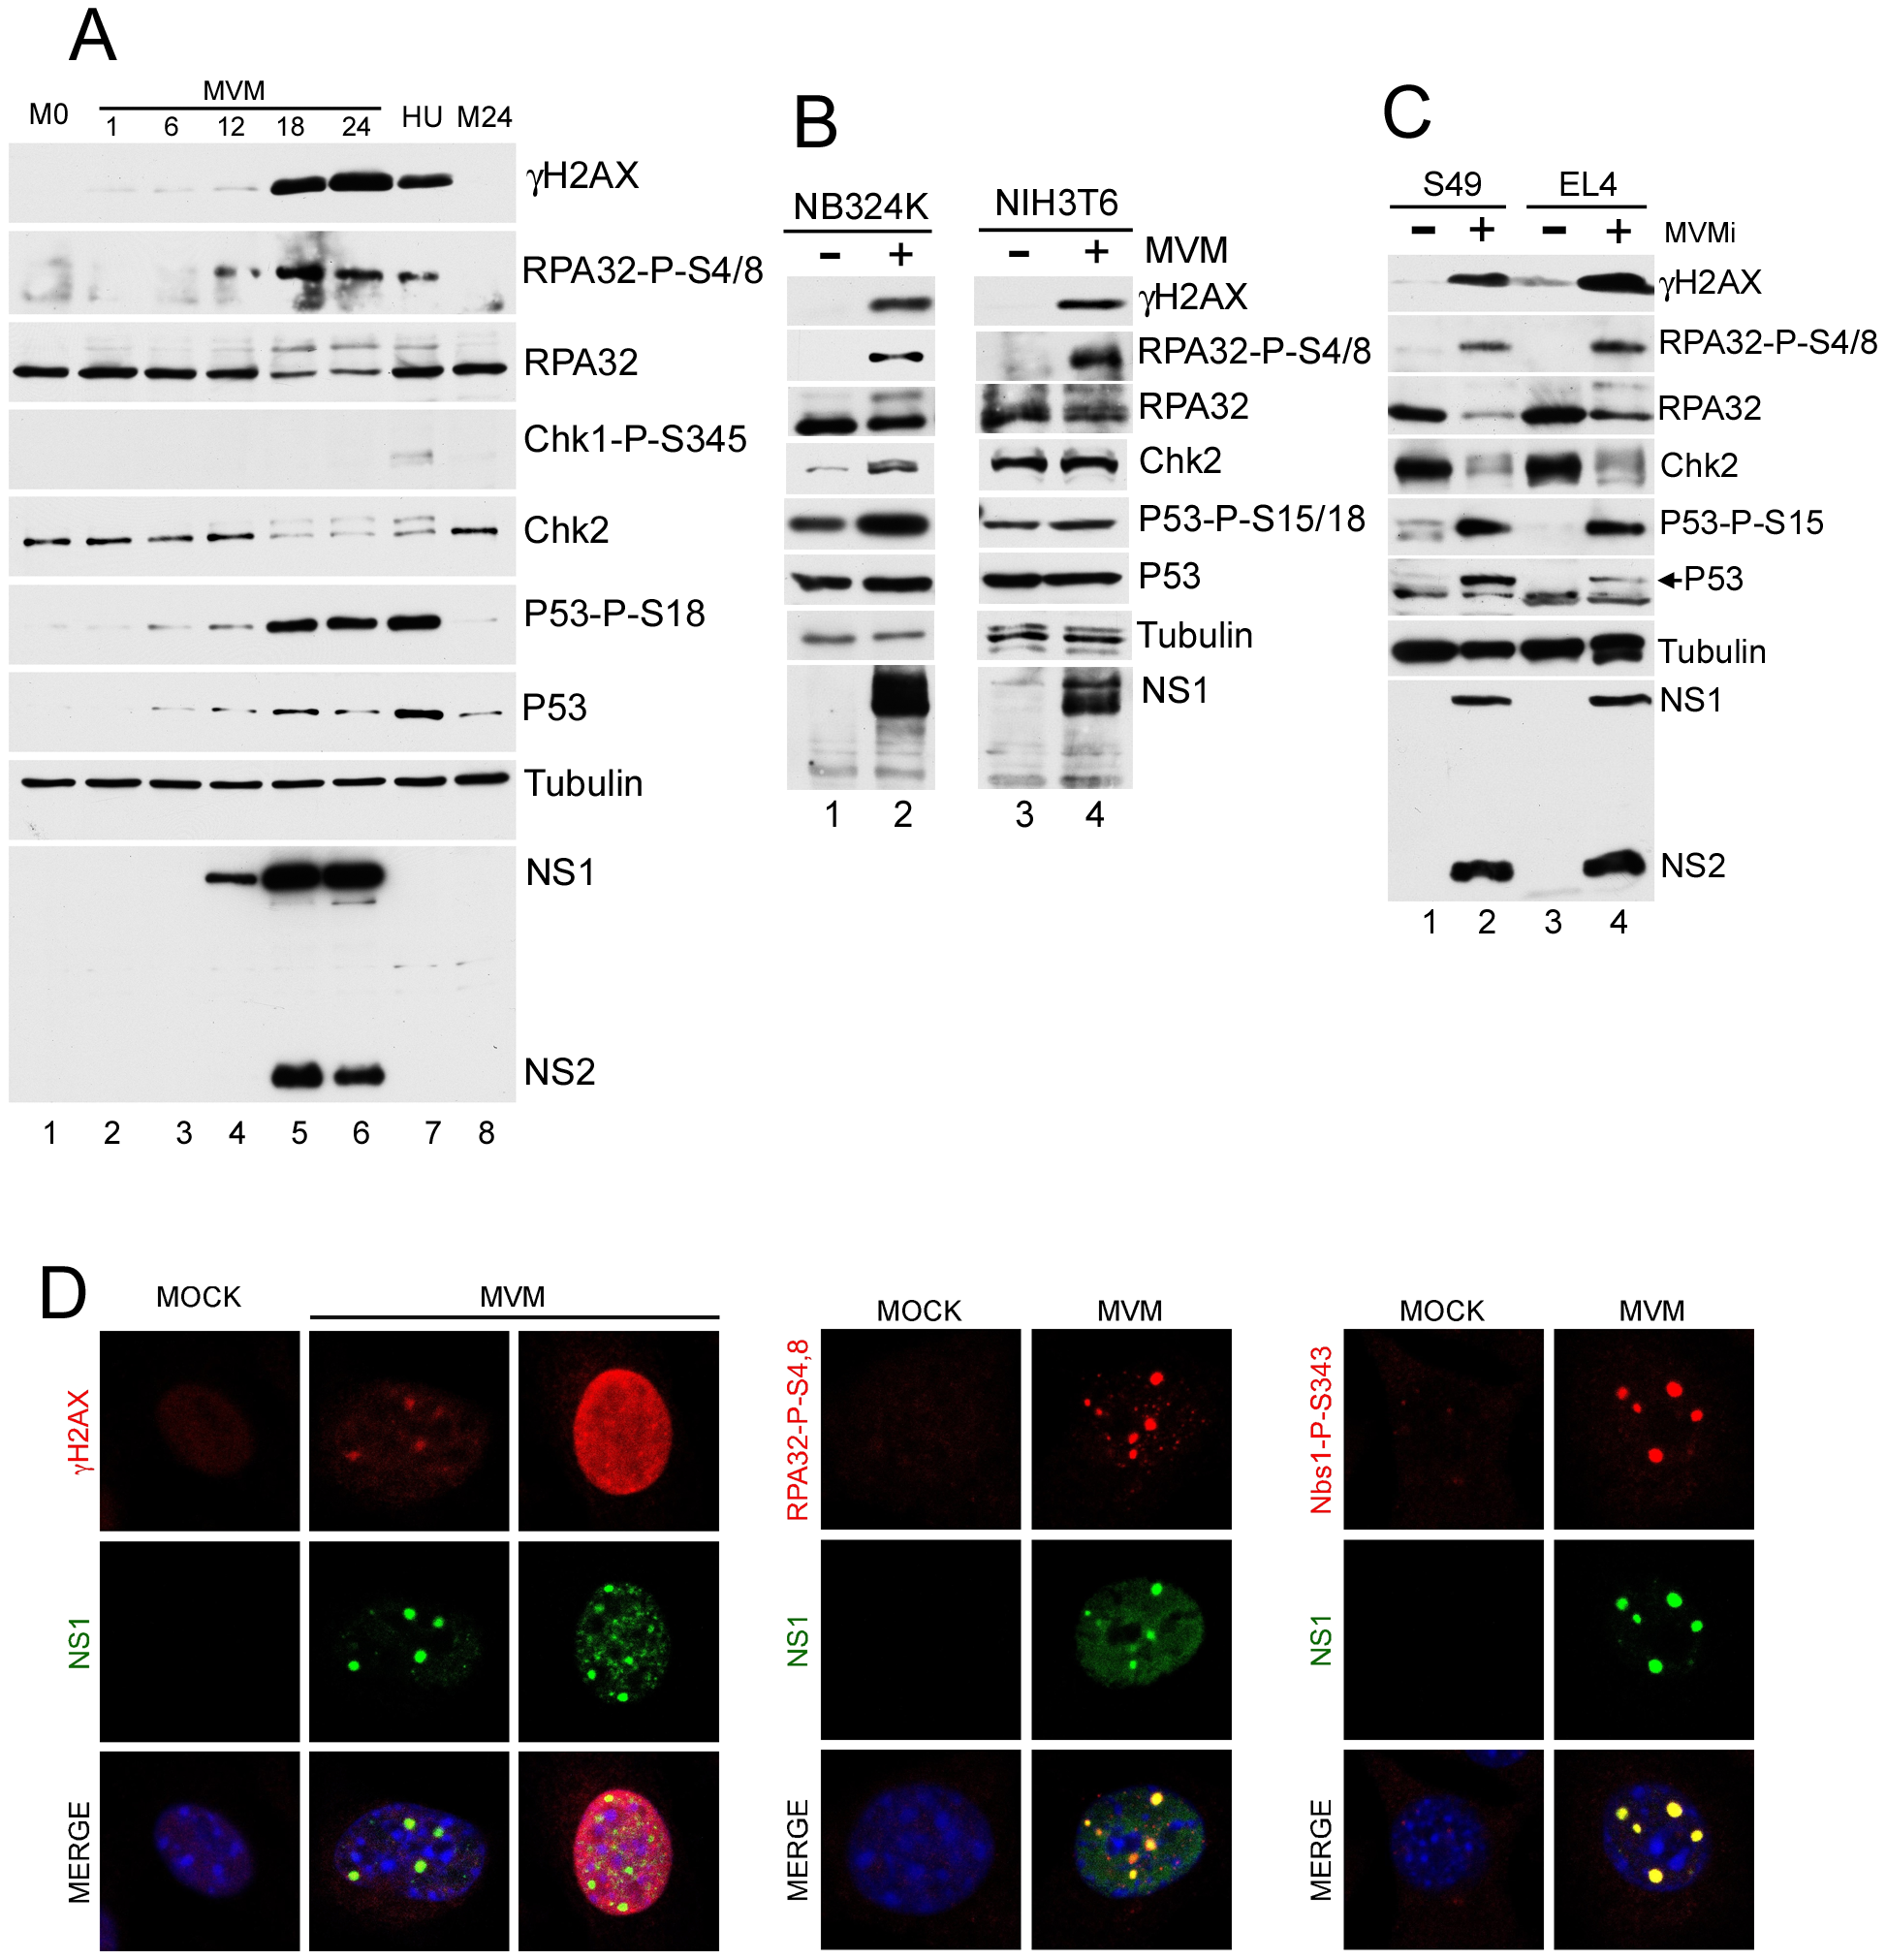 MVM infection induces a DNA damage response (DDR).